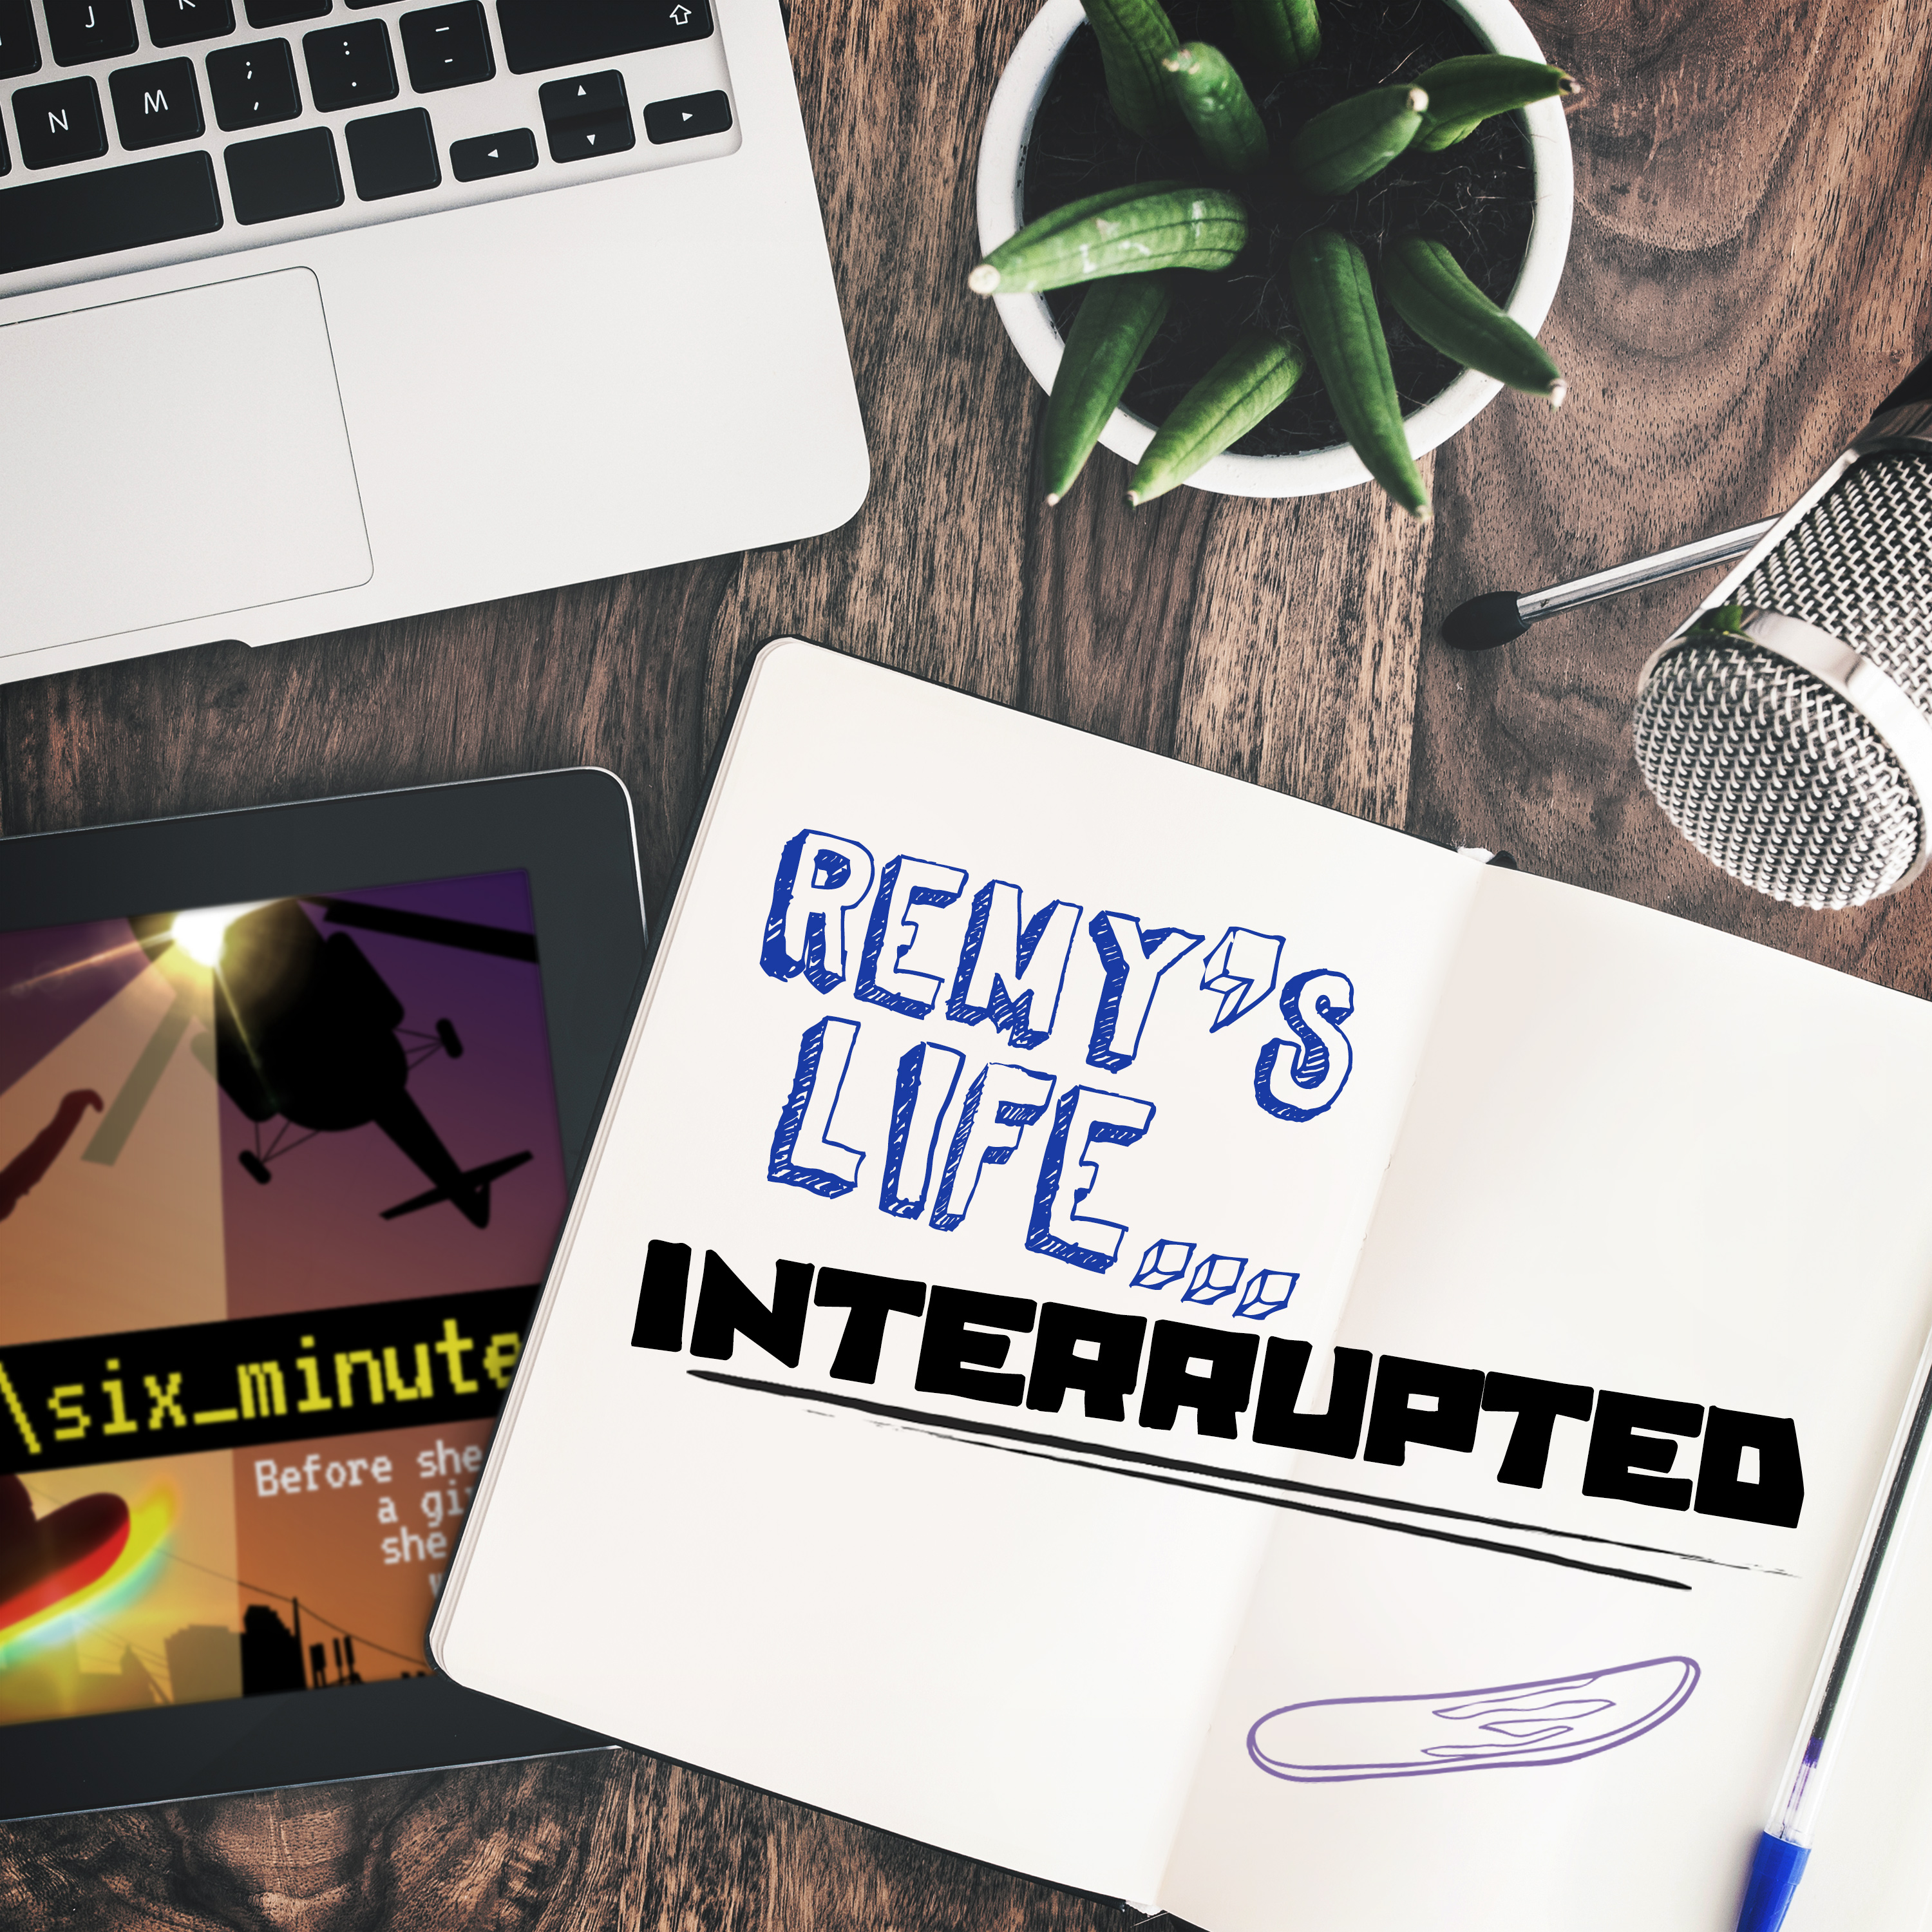 Remy's Life Interrupted: EP86